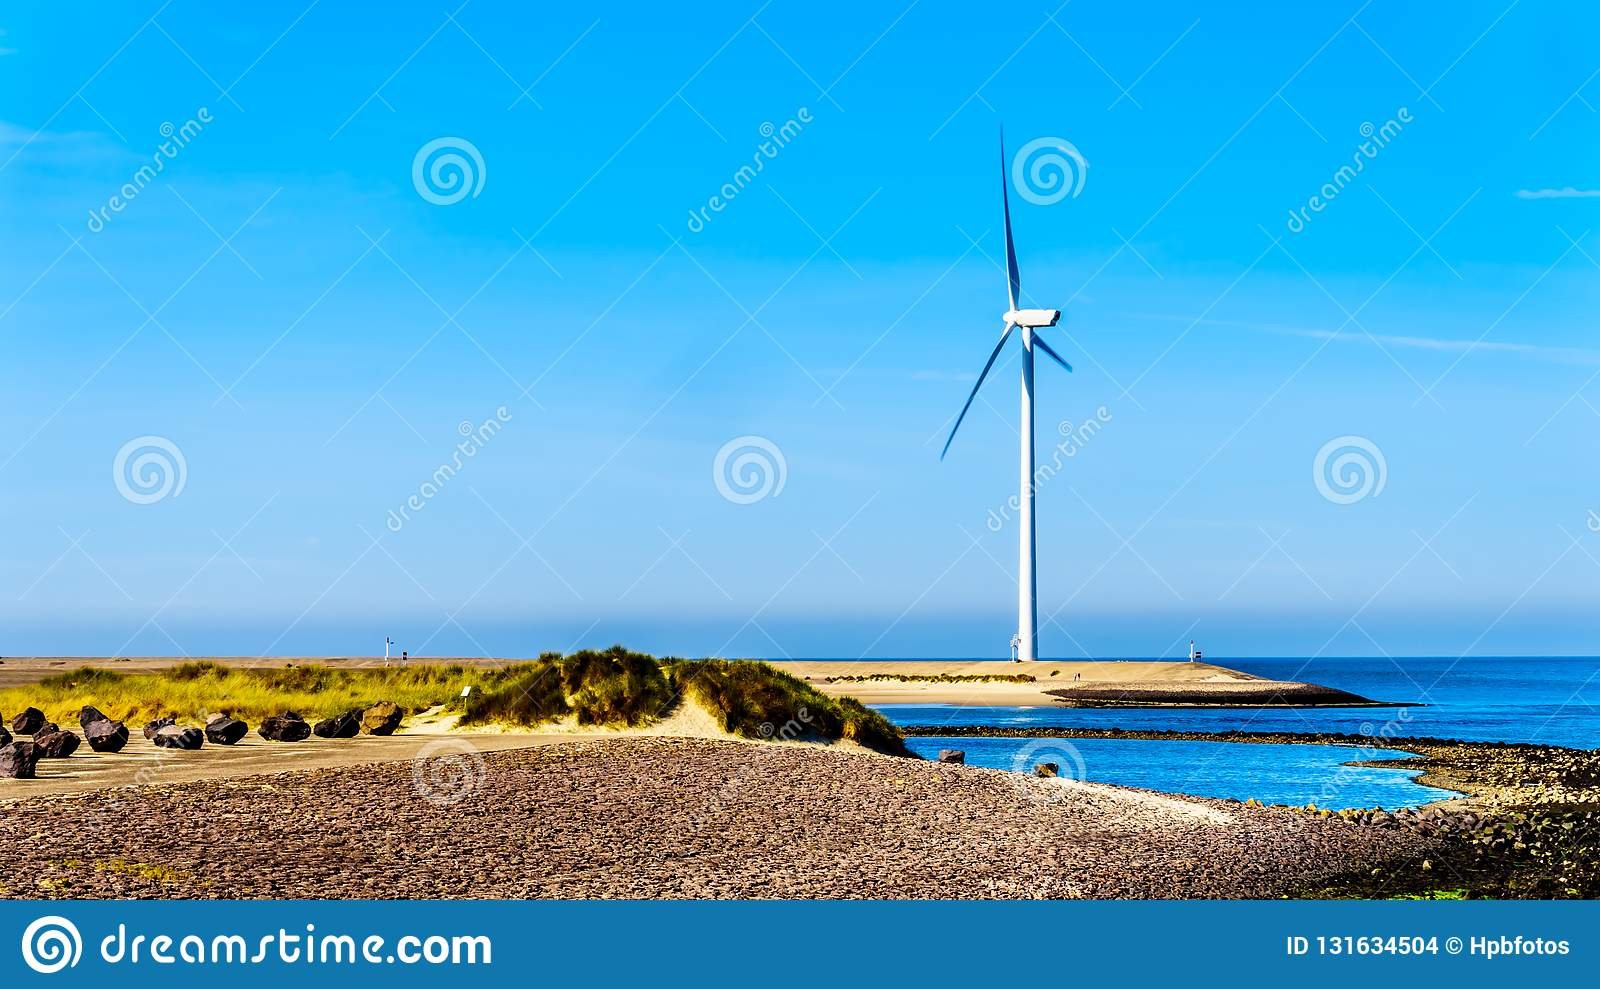 Wind Turbines at the Oosterschelde inlet at the Neeltje Jans island at the Delta Works Storm Surge Barrier